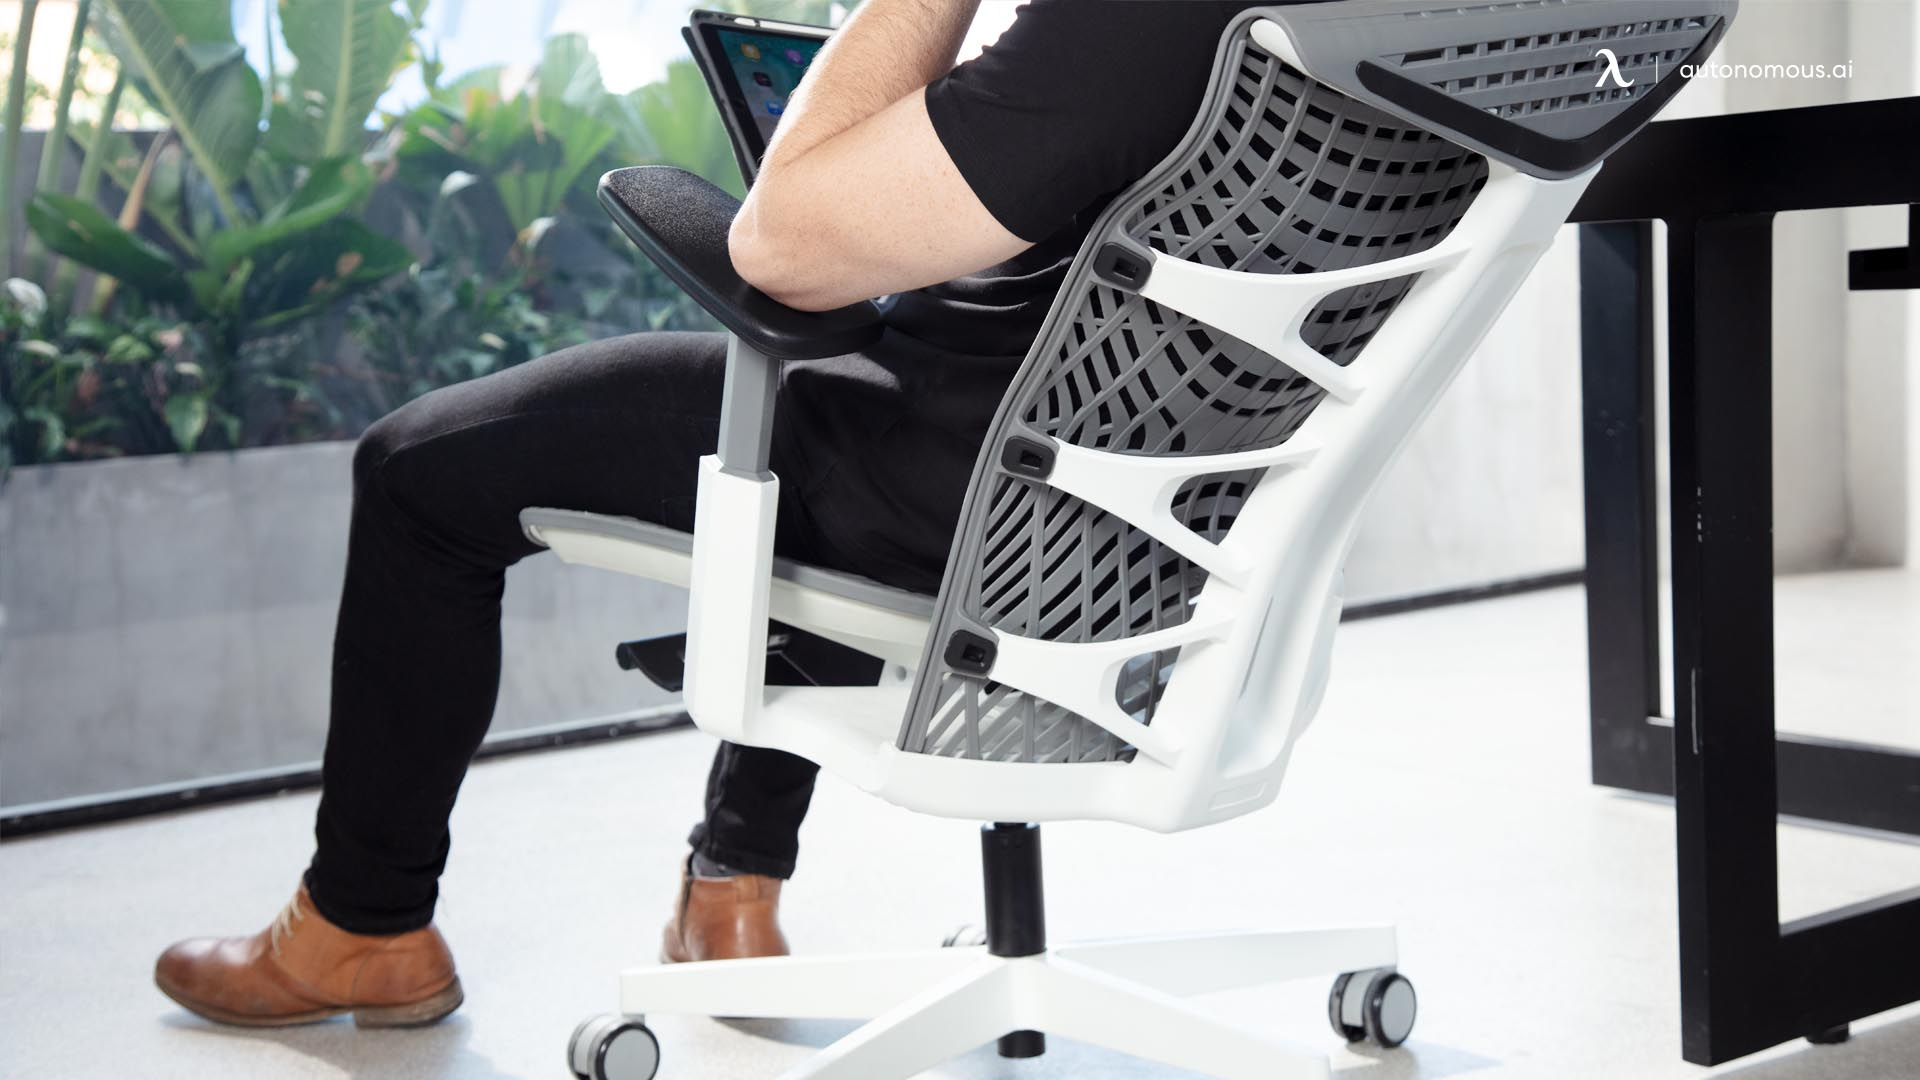 An ergonomic chair with adjustable back